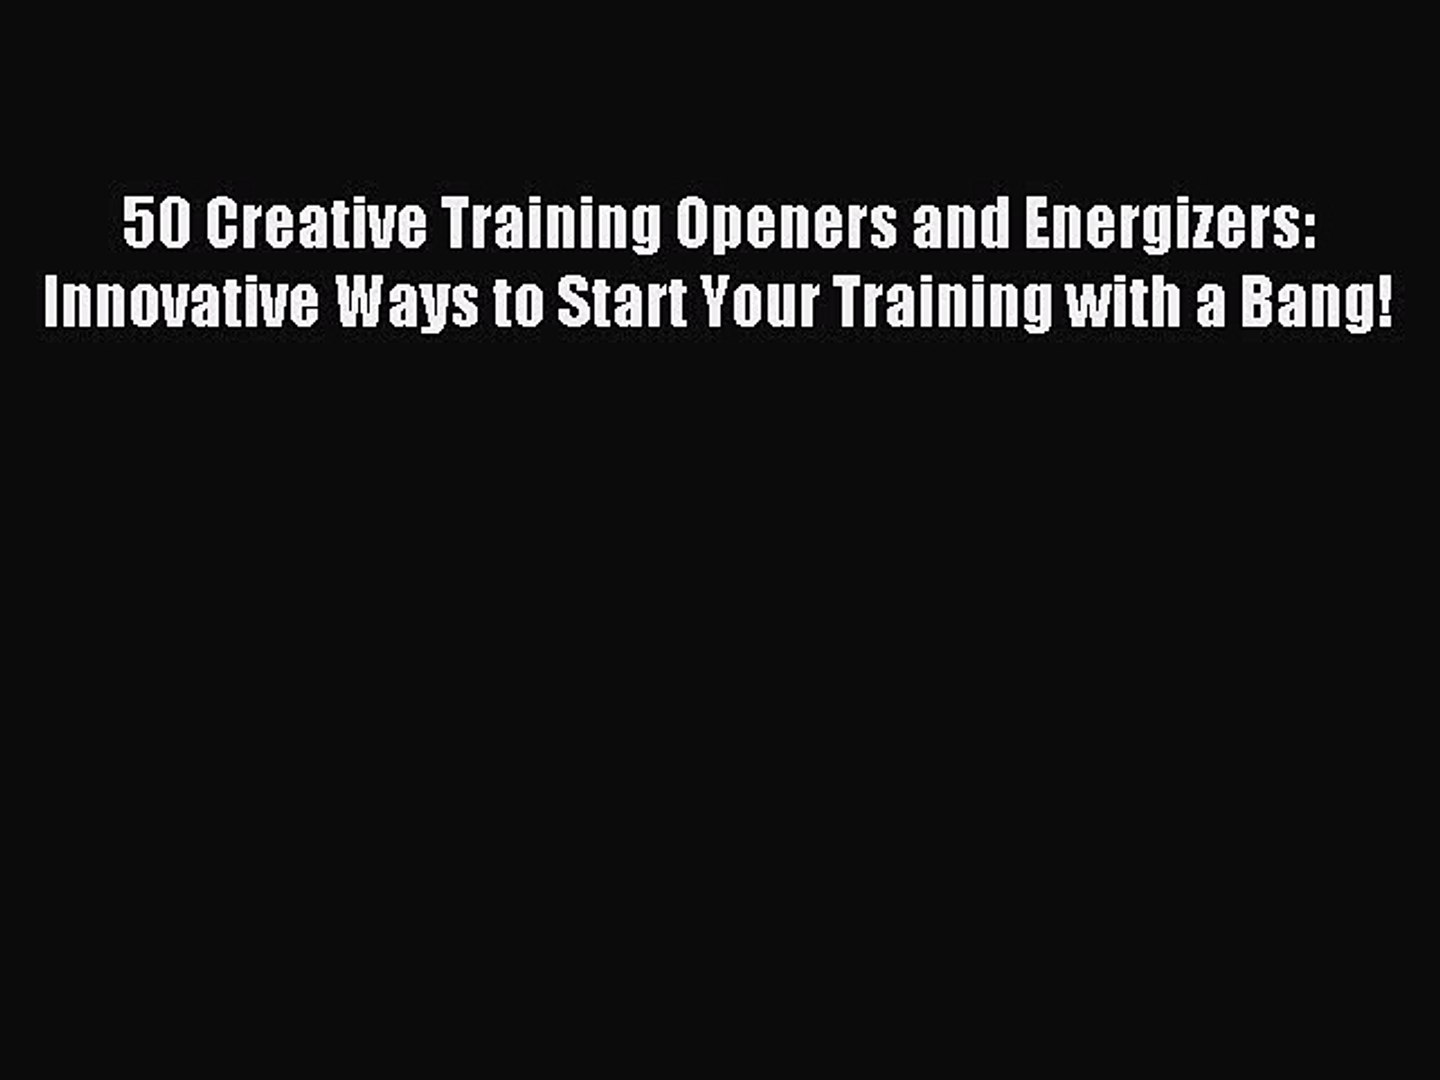 Innovative Ways to Start Your Training with a Bang! 50 Creative Training Openers and Energizers